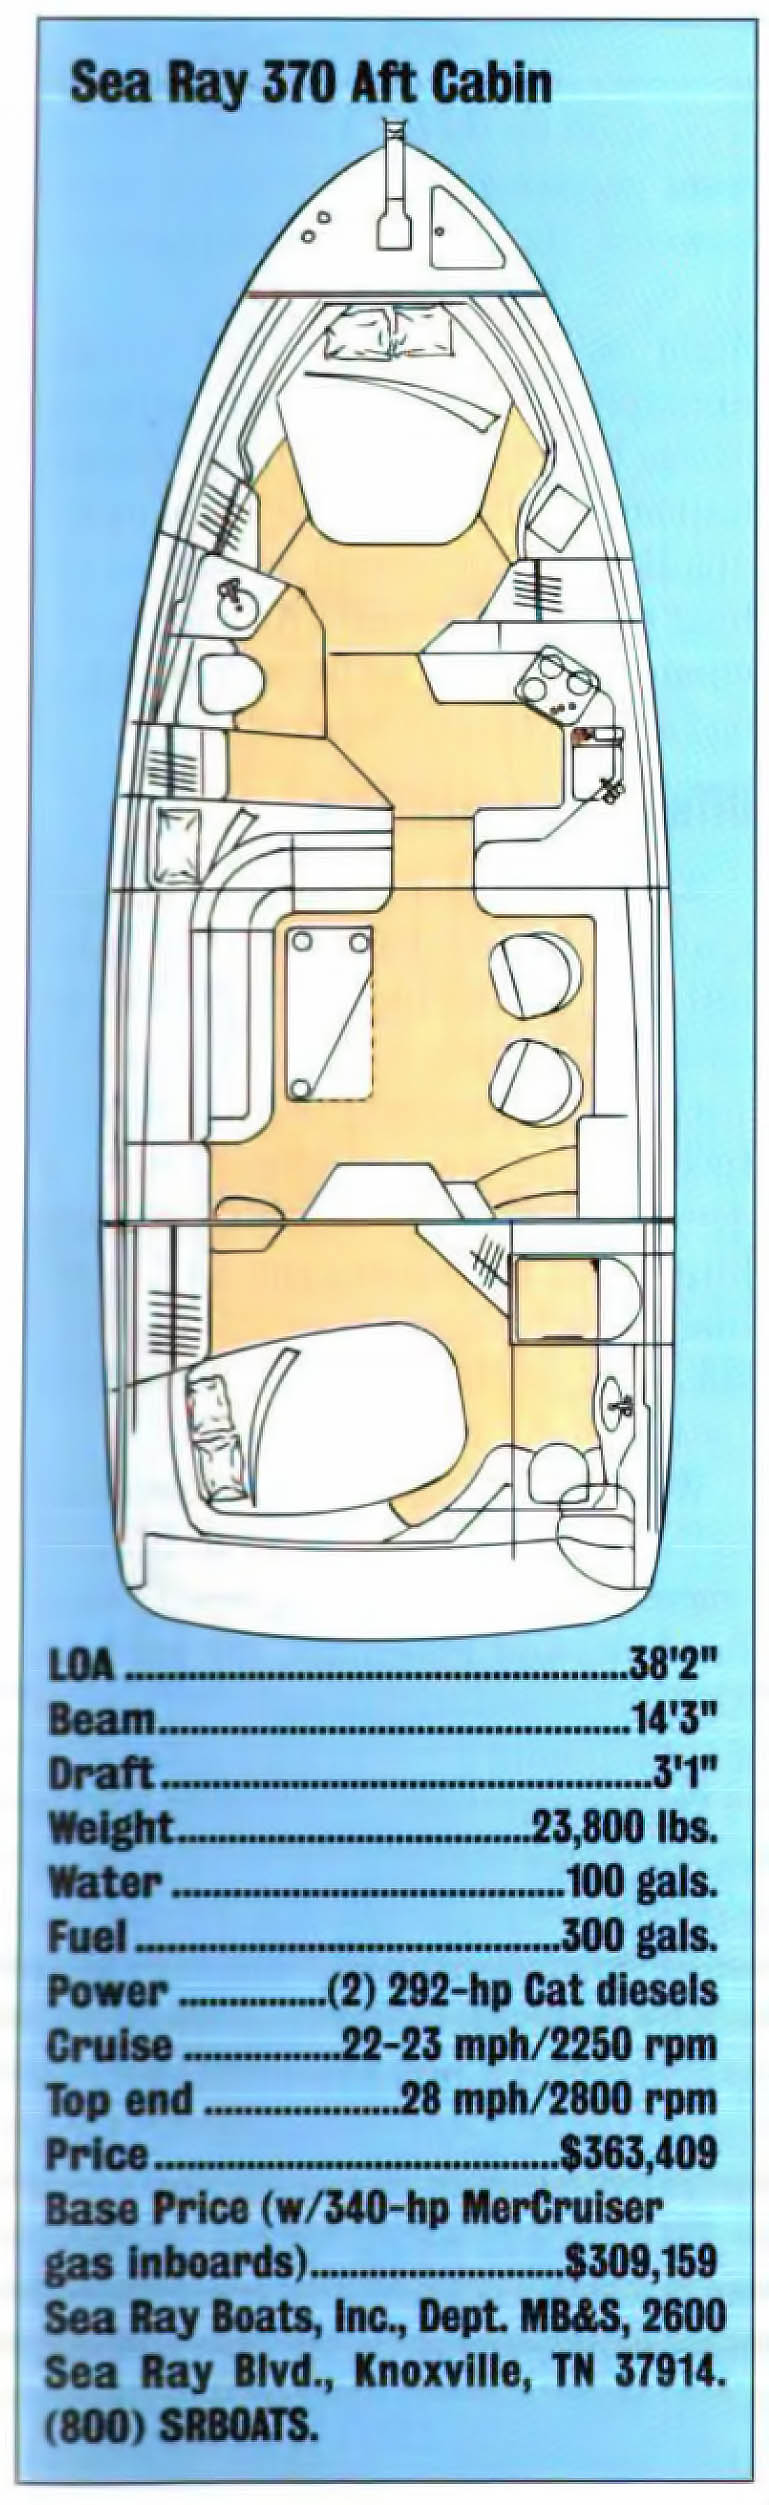 medium resolution of sea ray 370 aft cabin layout